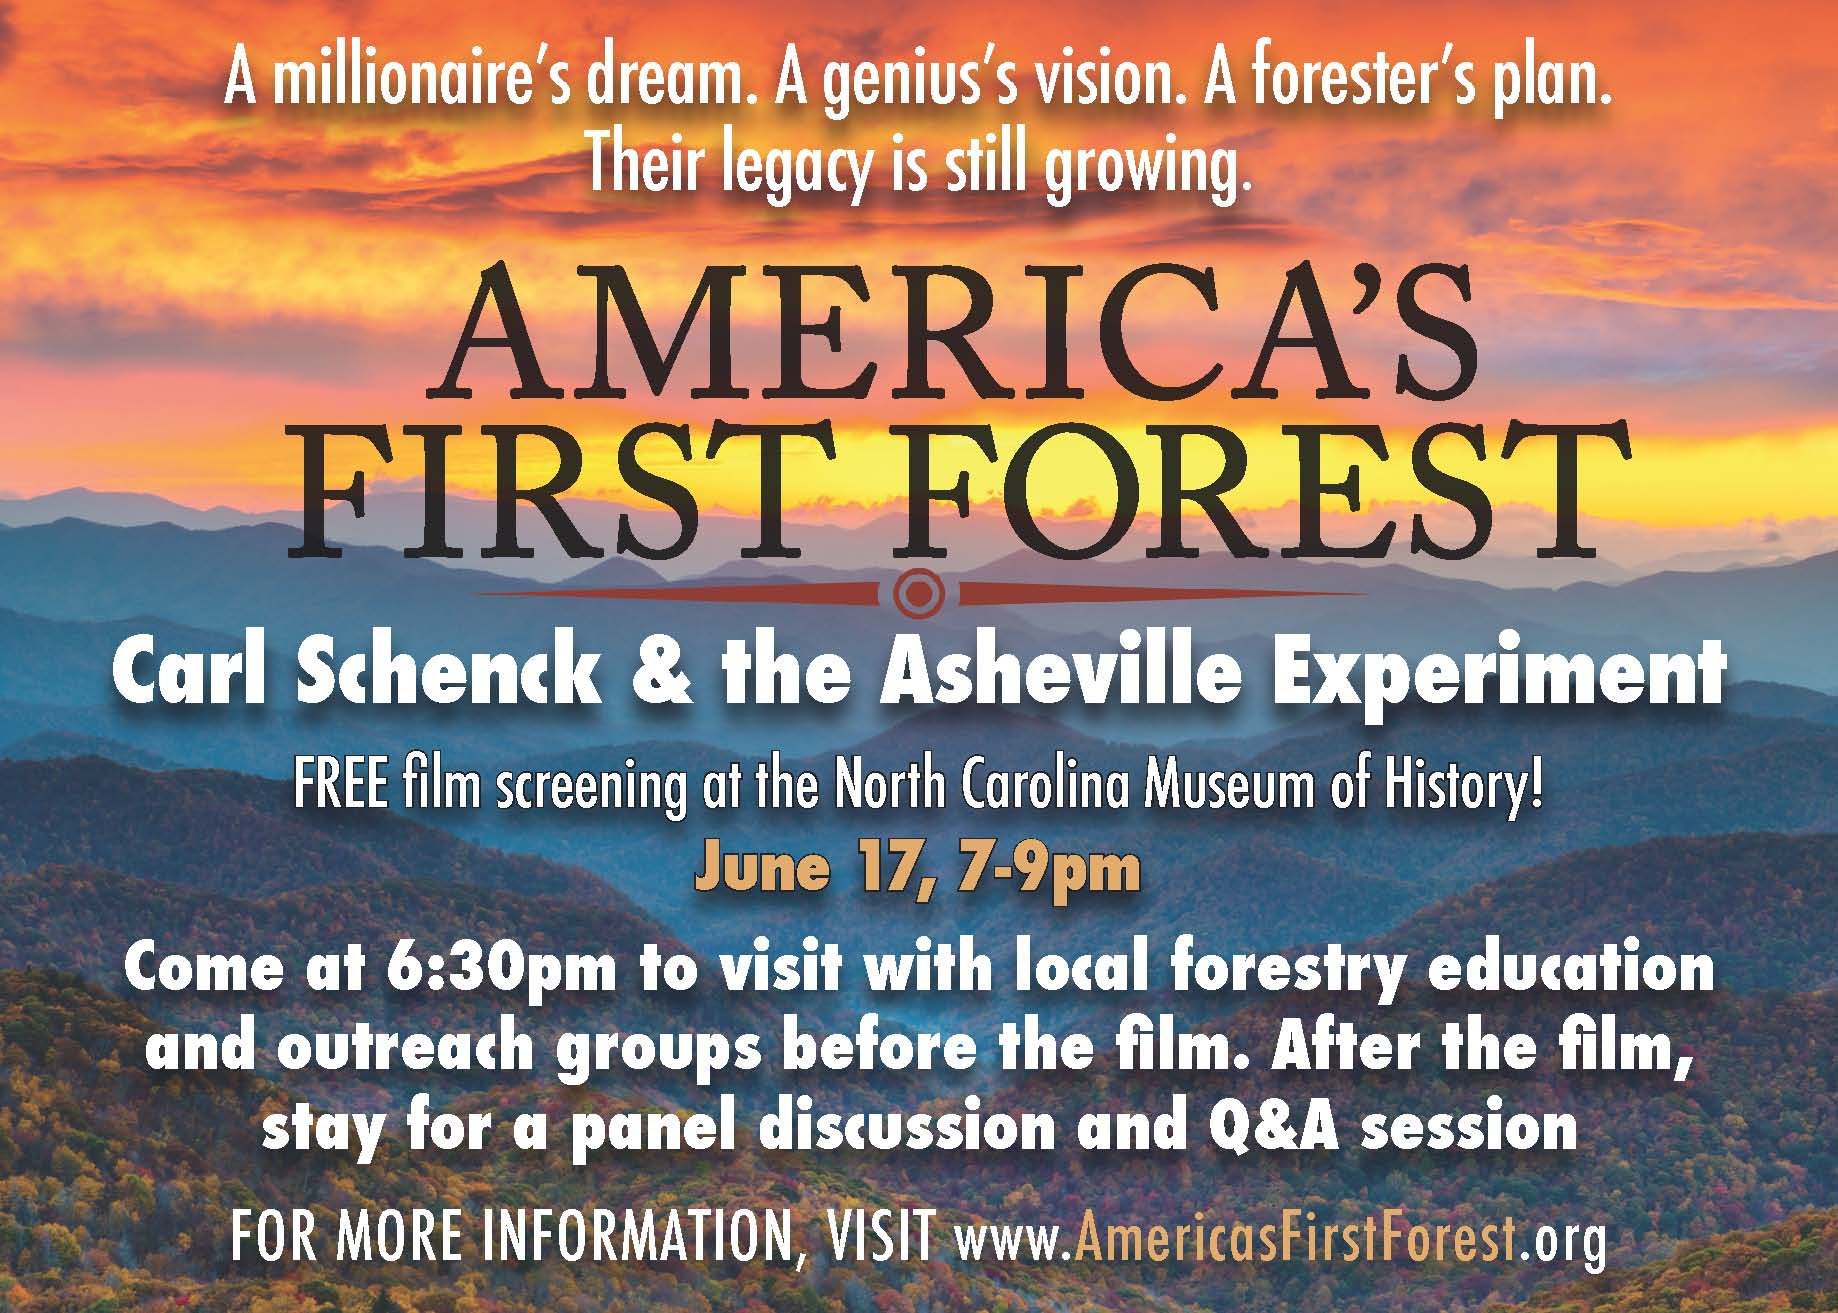 America's First Forest